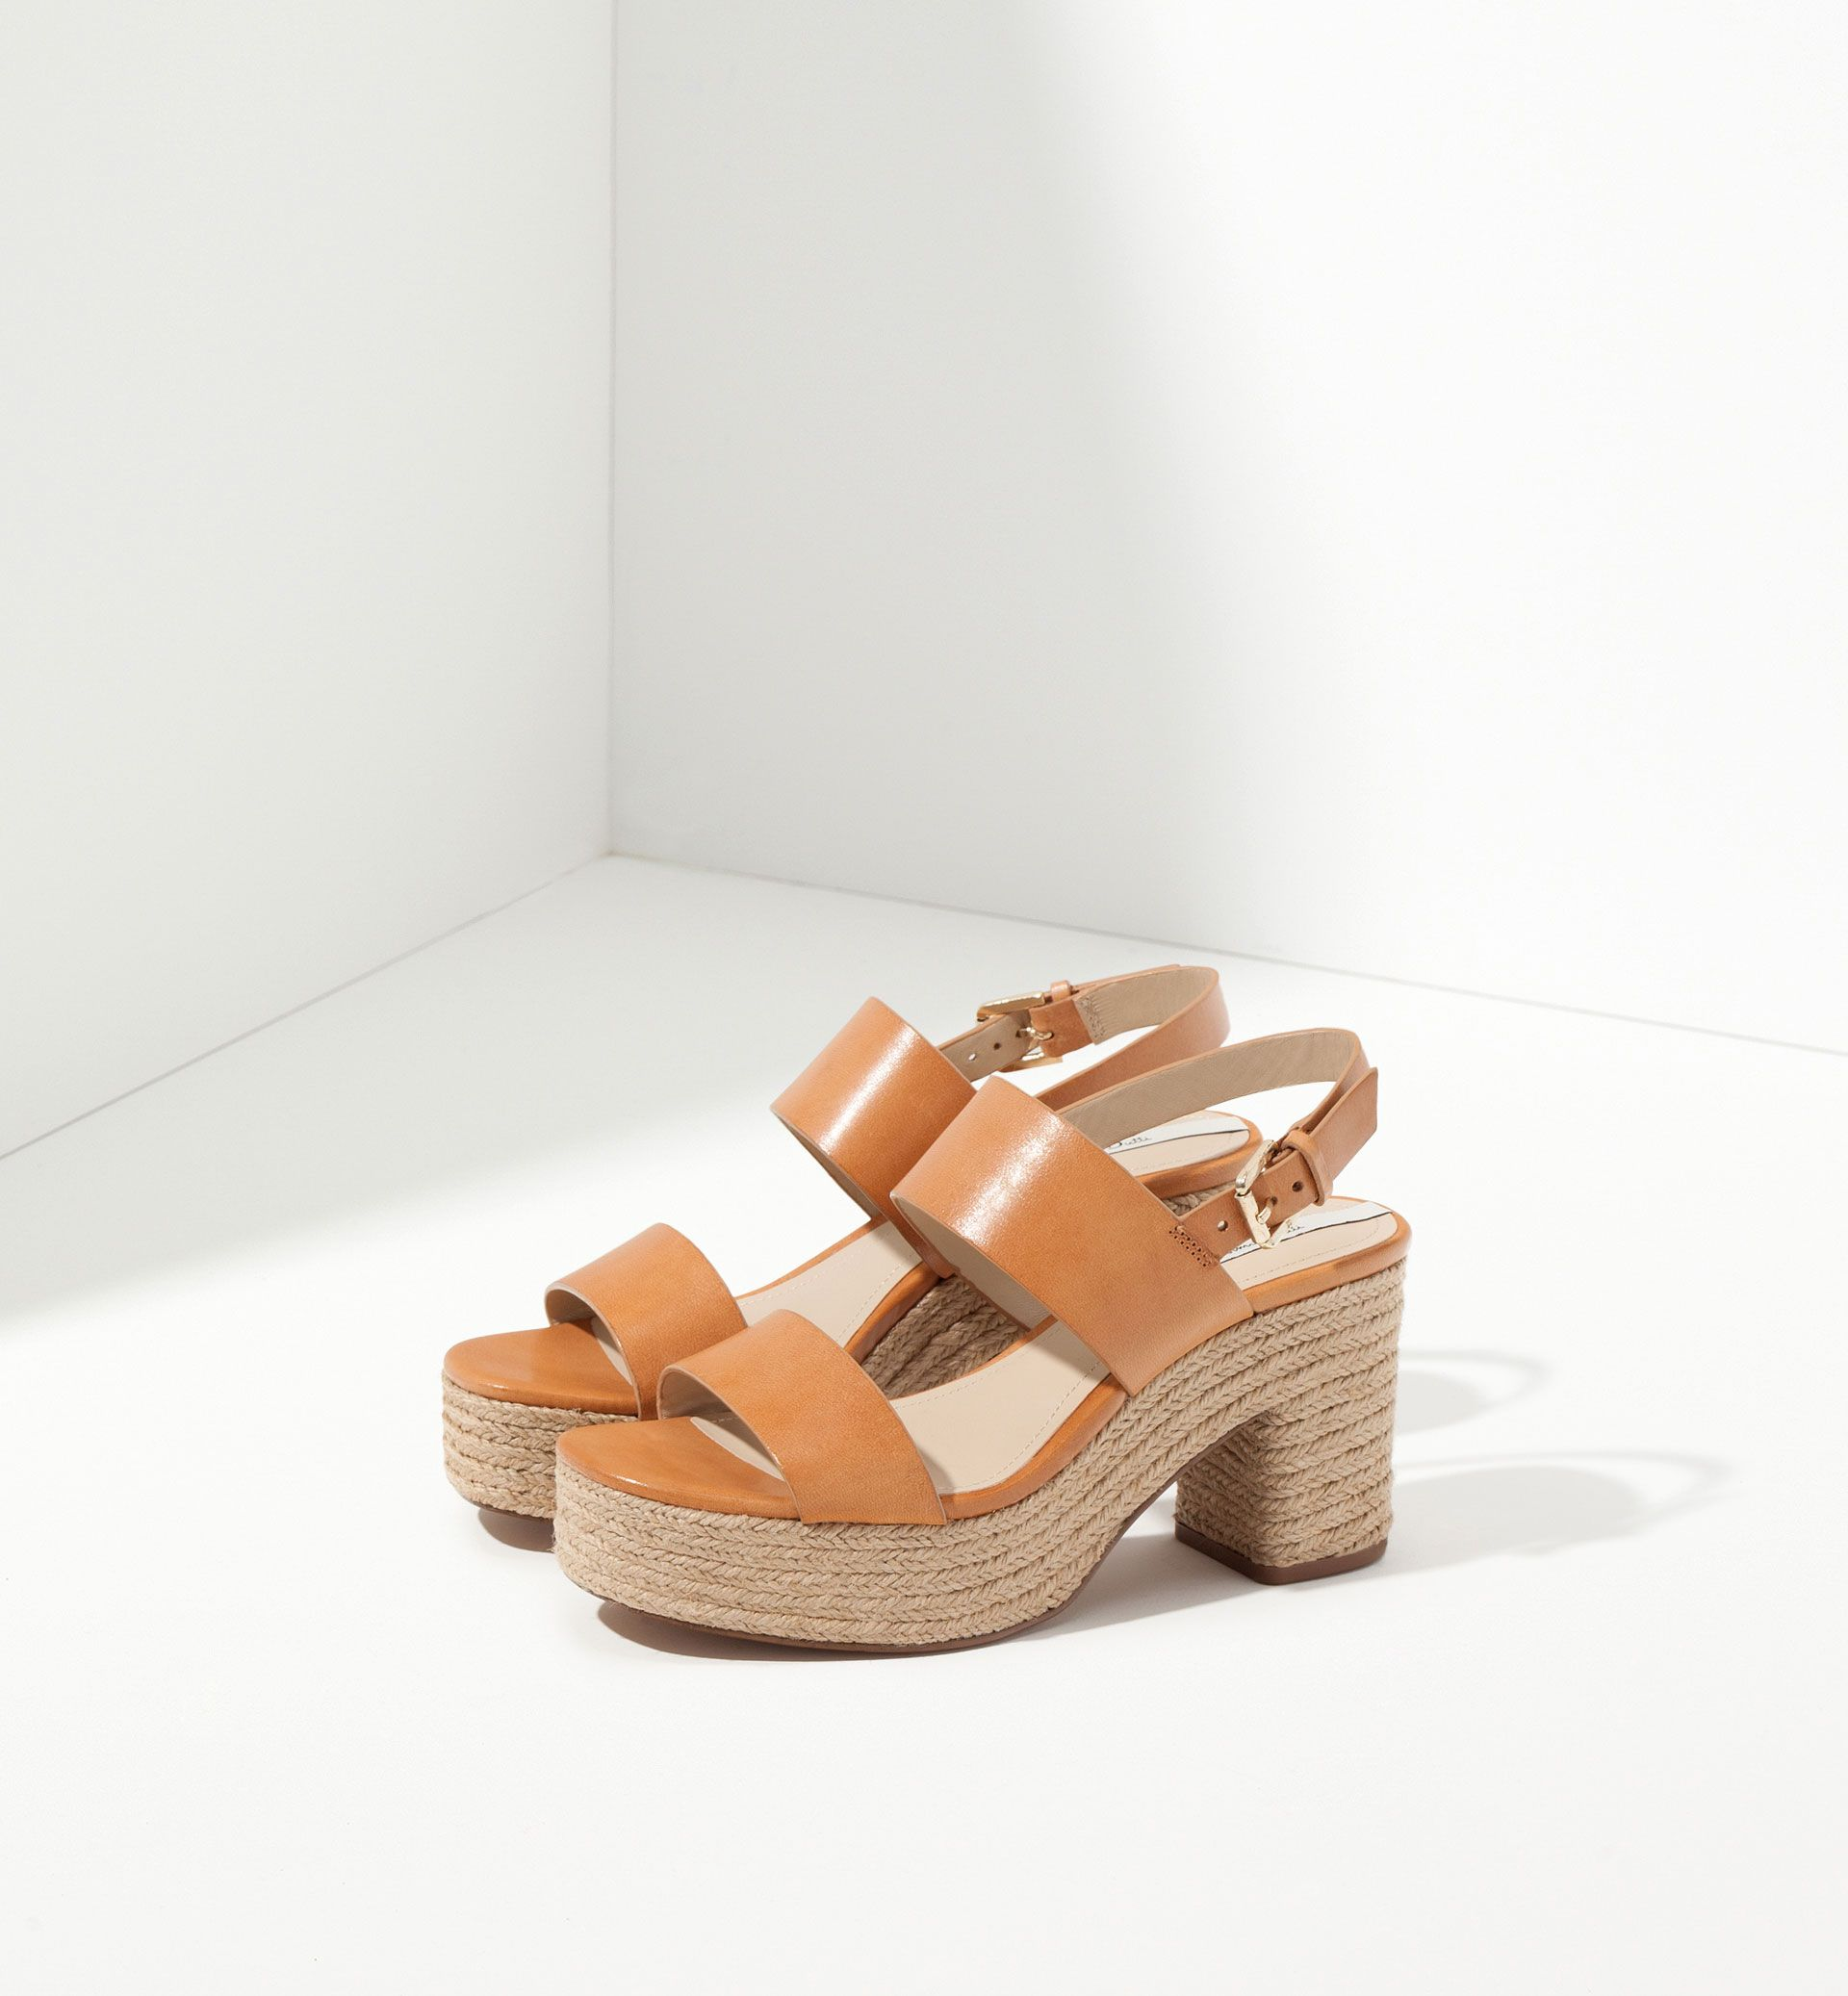 MASSIMO DUTTI - JUTE AND LEATHER SANDALS